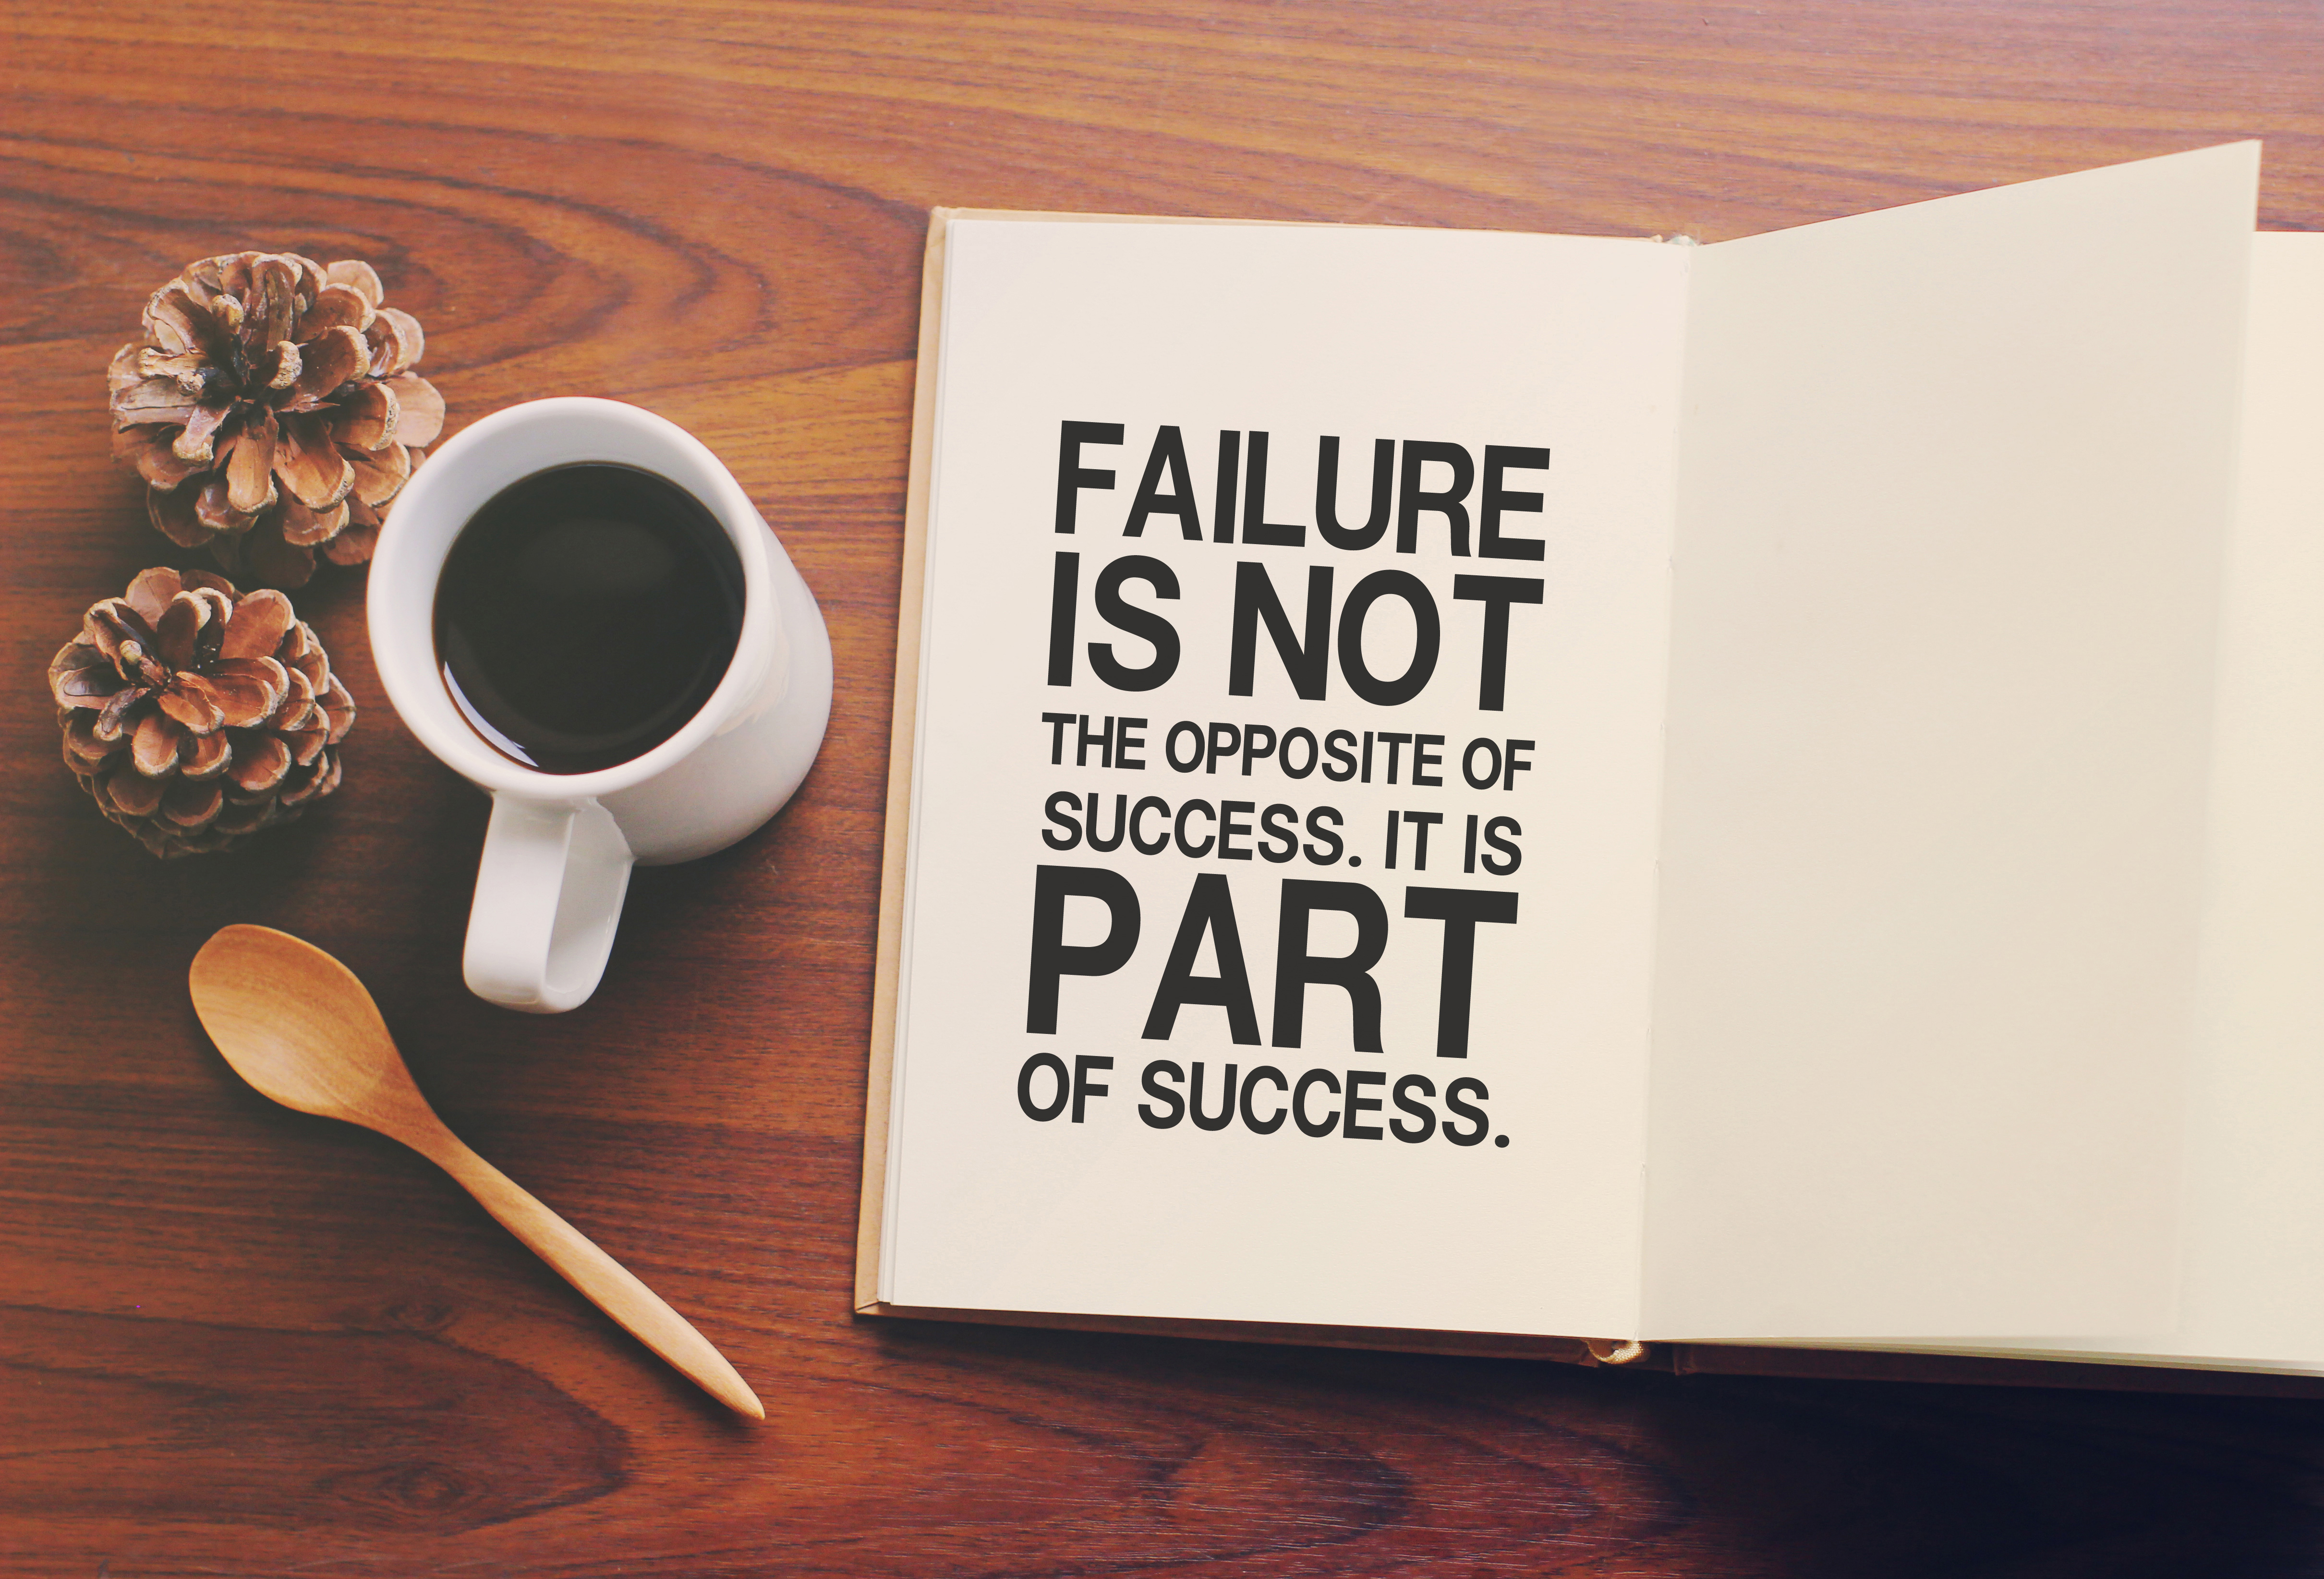 Failure is a Part of the Journey